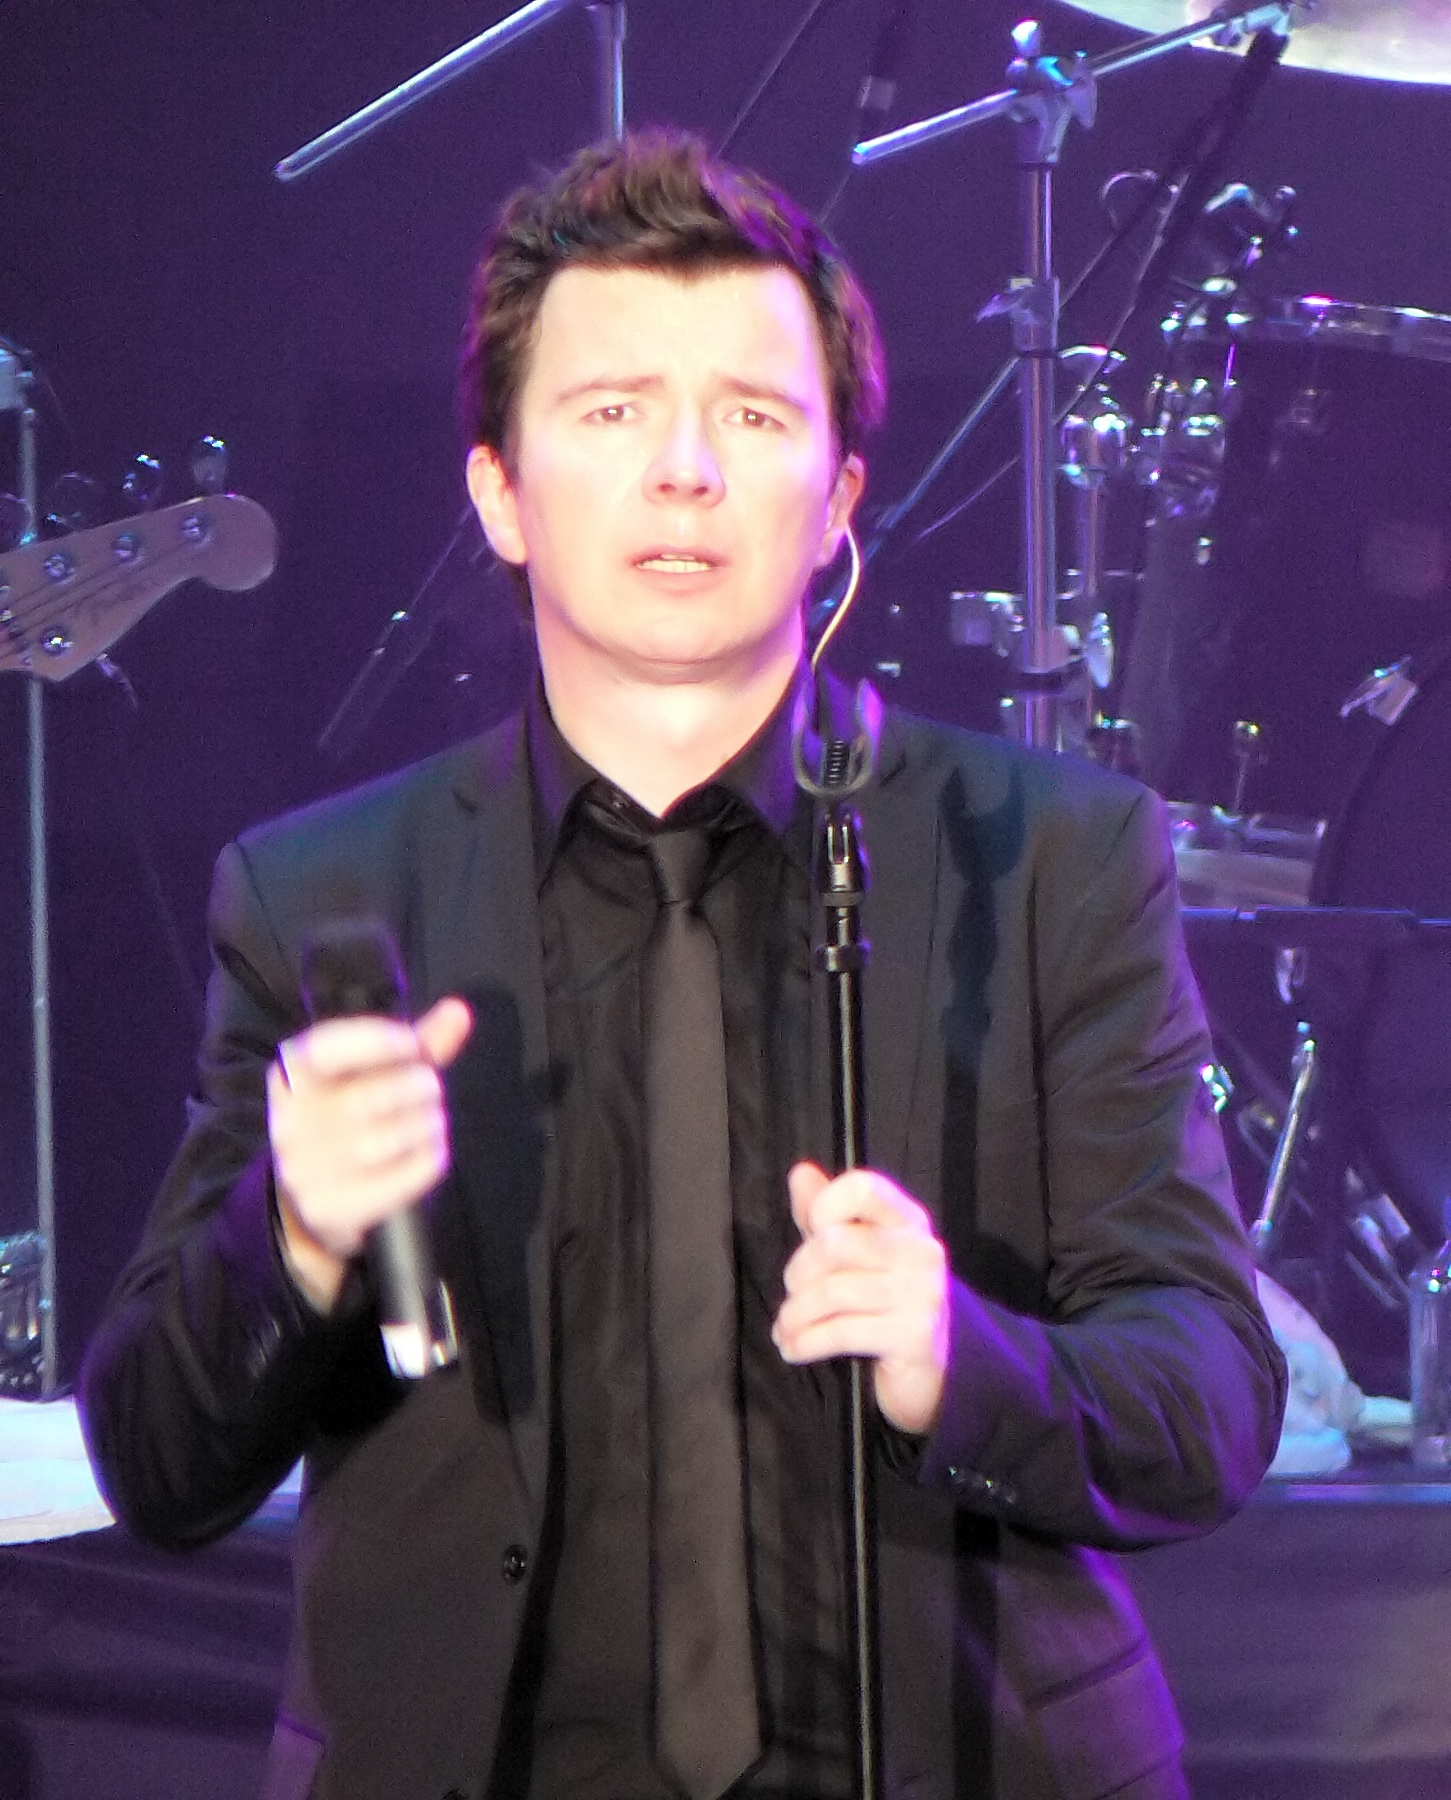 While Rick James sits in his grave, Rick Astley enjoys inexplicable popularity. Why?????